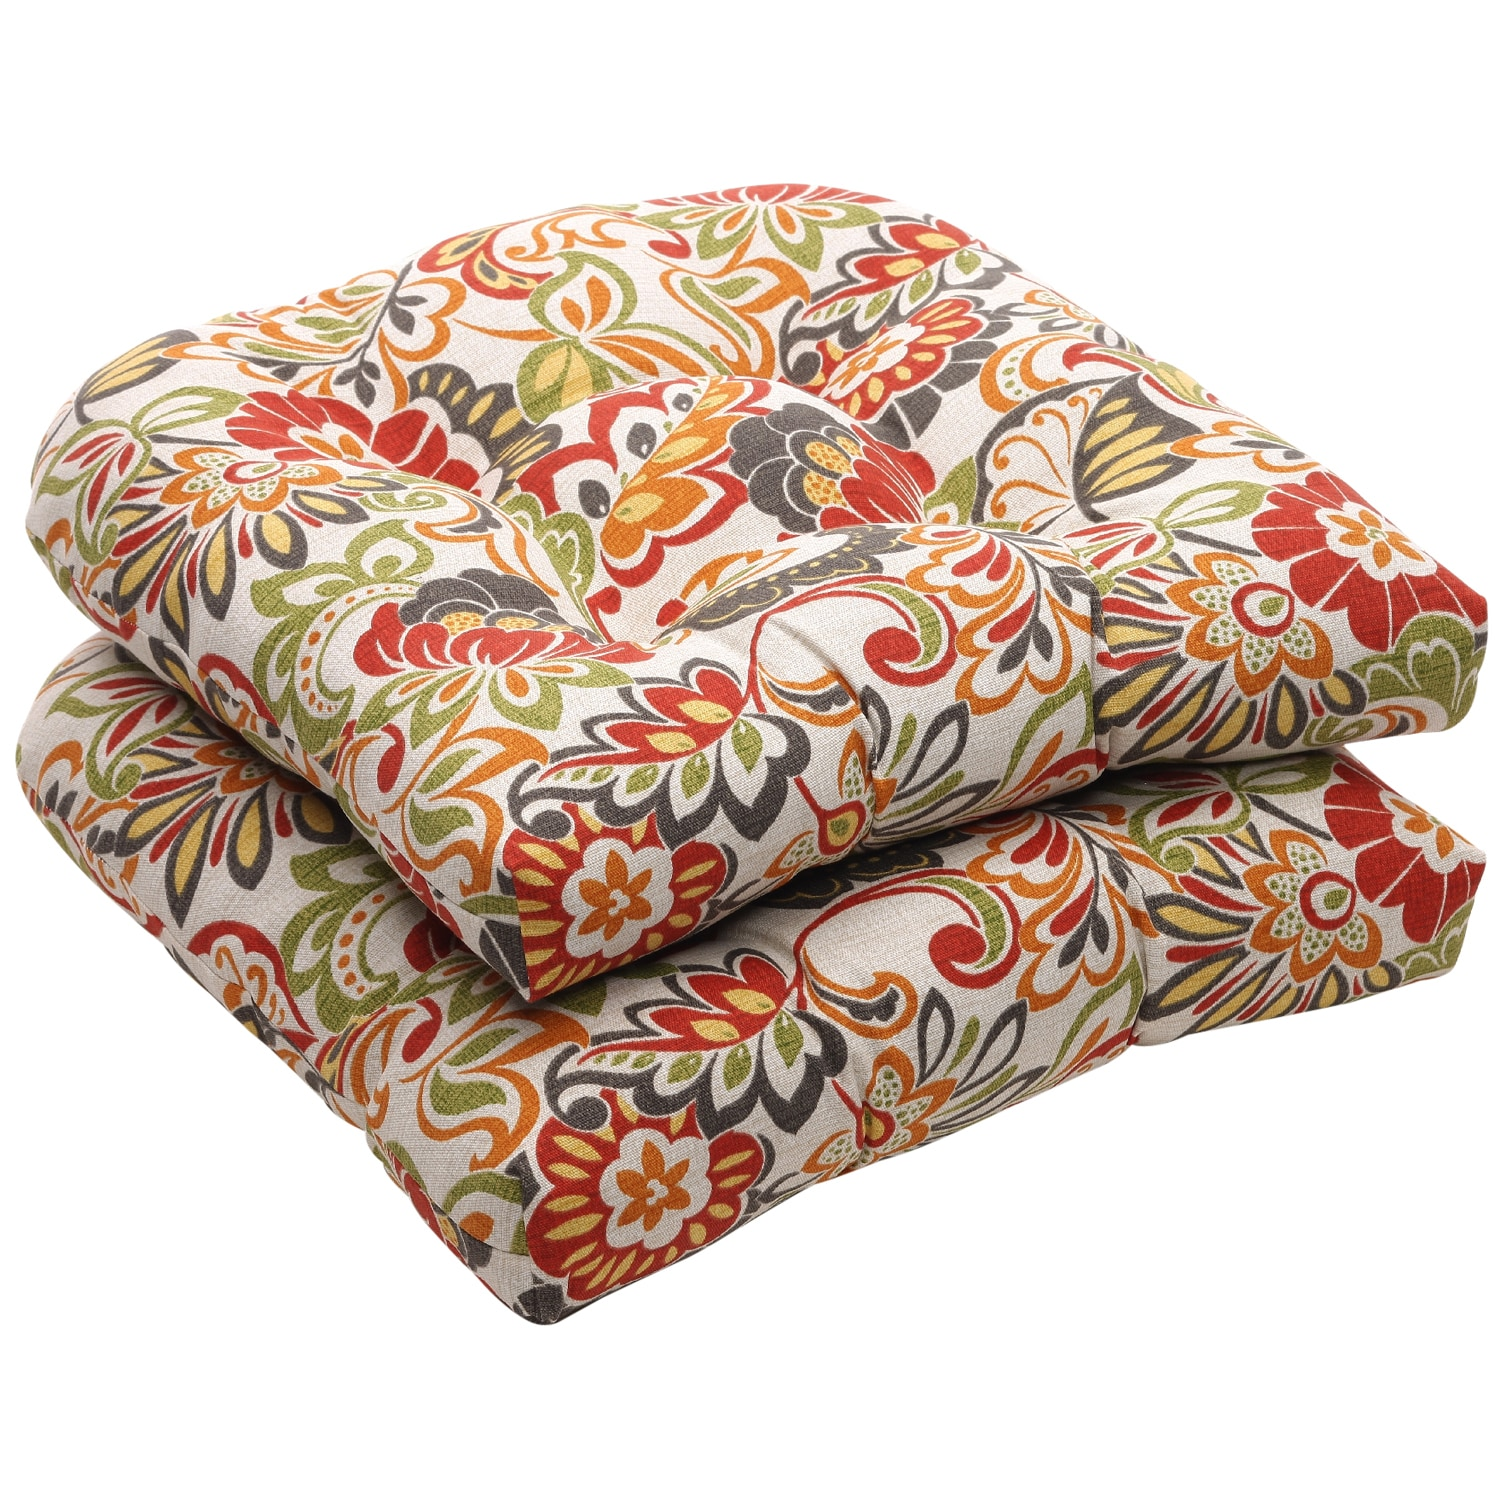 Outdoor multicolored floral wicker seat cushions set of 2 for Garden furniture cushions